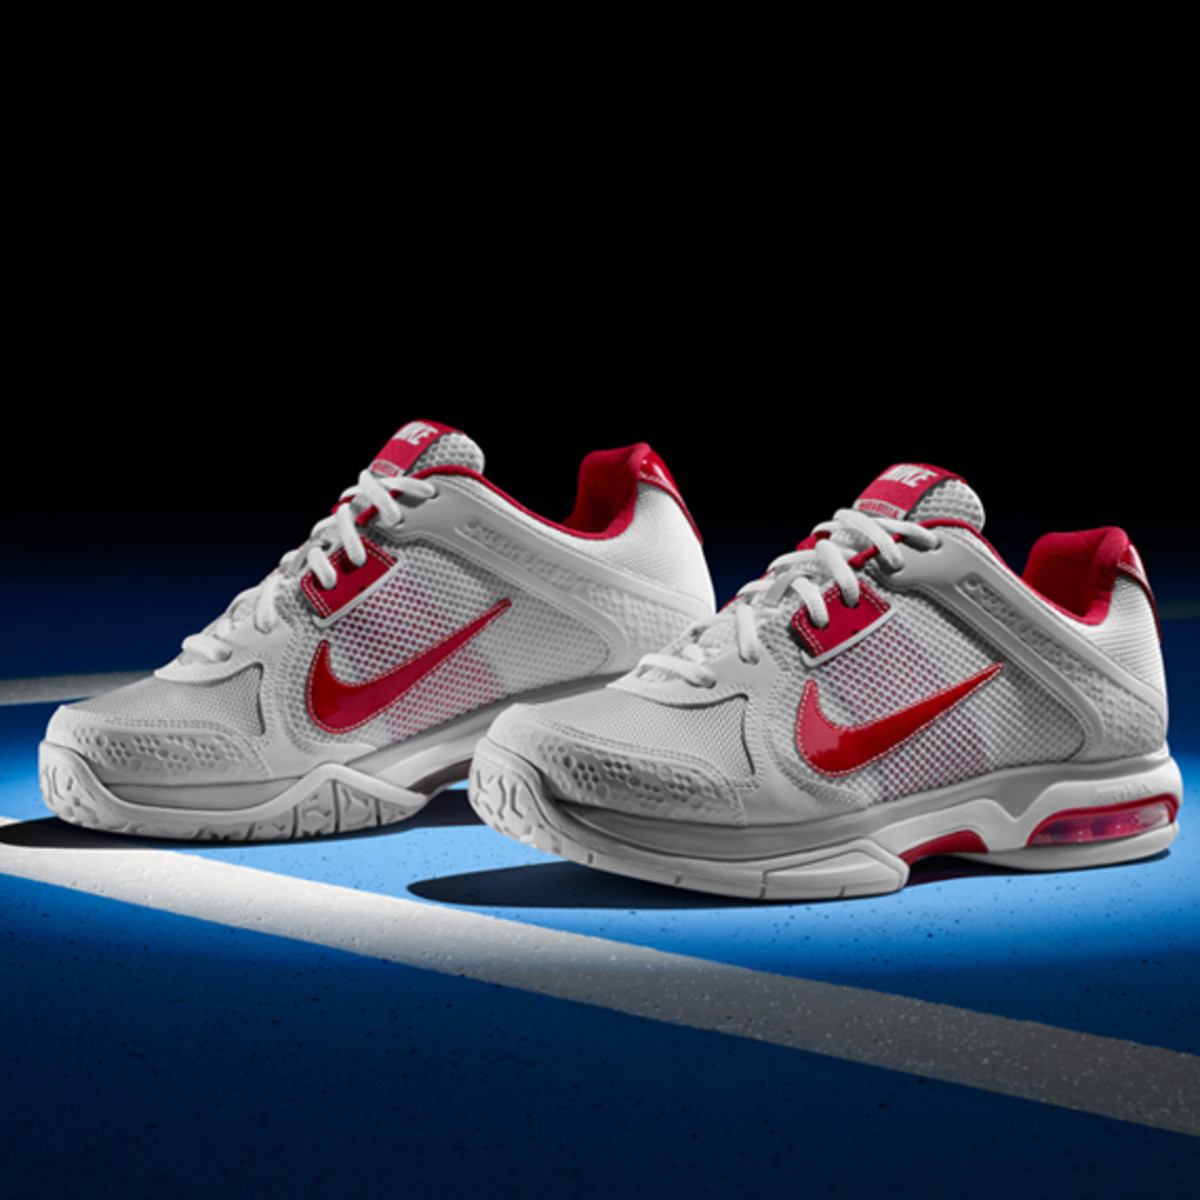 nike-women-air-max-mirabella-3-serena-williams-01